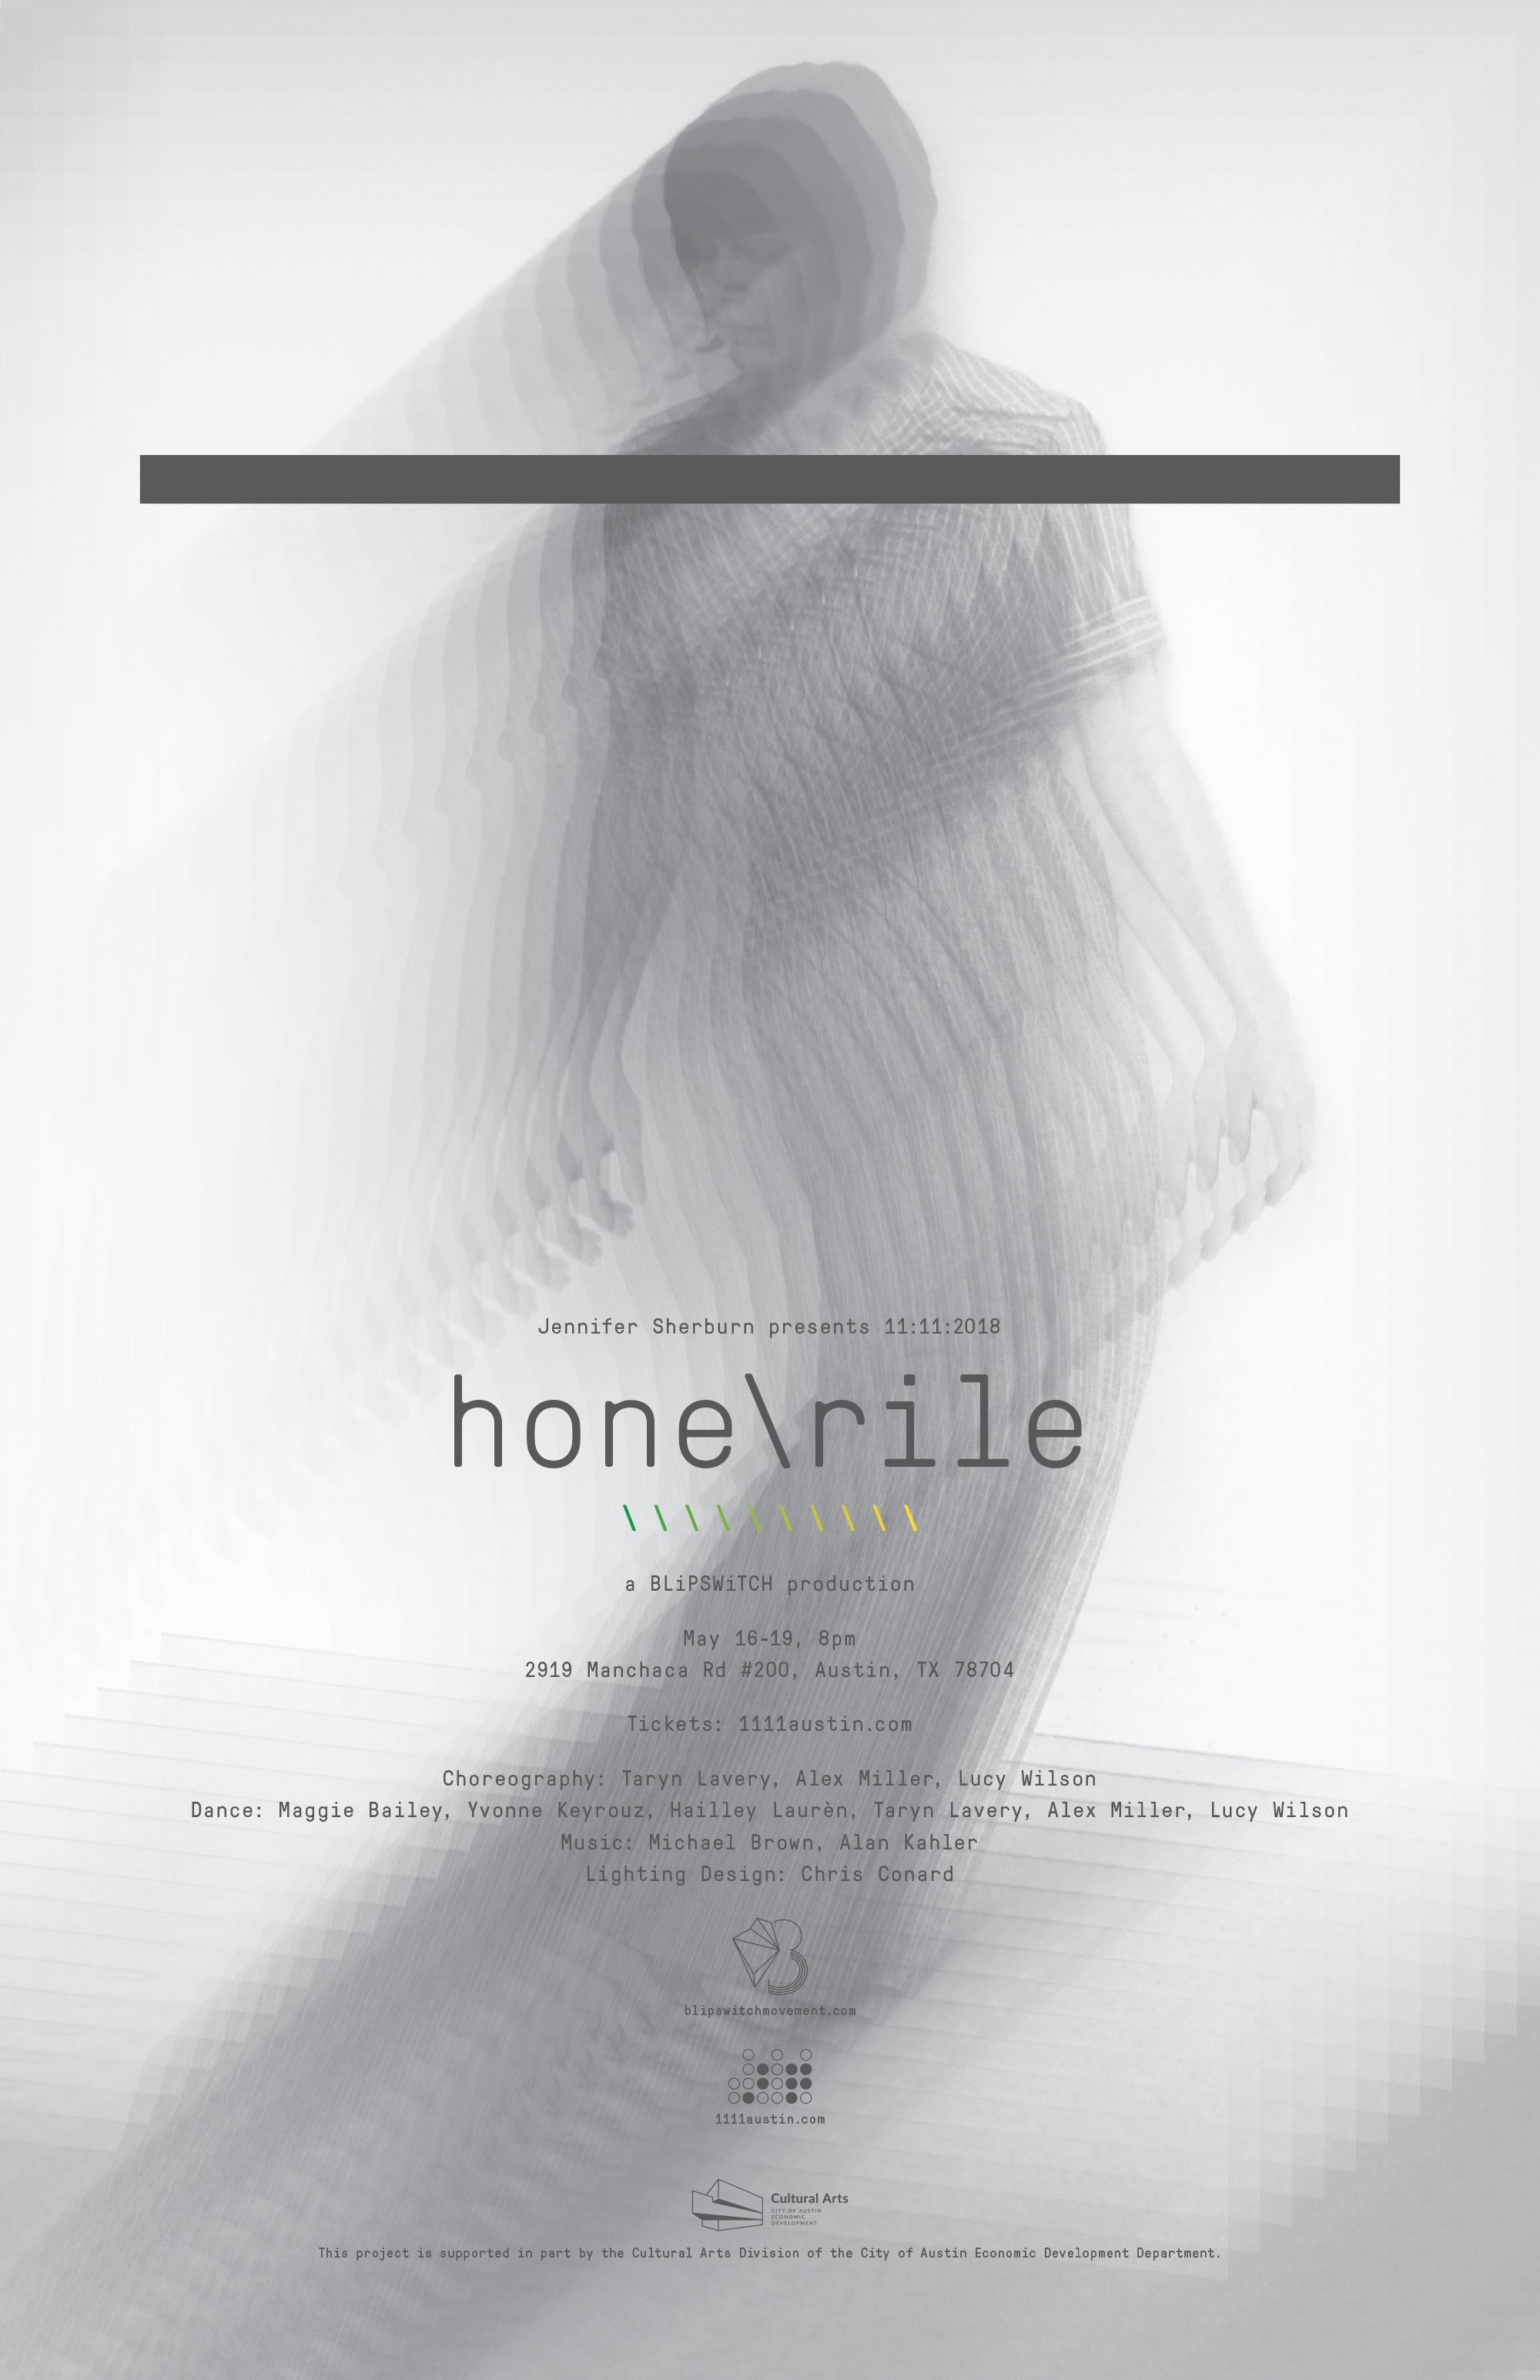 hone \ rile - May 16-19, 2018Austin, TXhone \ rile examined the friction between the material world and an idealized reality recreated through thoughts and hope. Held inside a vacant design showroom— alongside an original score performed live by composers Michael Brown and Alan Kahler of Solid State Dream Suit— six dancers animated themes of exhaustion, struggle and repeated failure through stamina, dynamism, tenderness and vulnerability.hone \ rile received a 2018 artist grant from Jennifer Sherburn, made possible by the Cultural Arts Division of the City of Austin Economic Development Department.